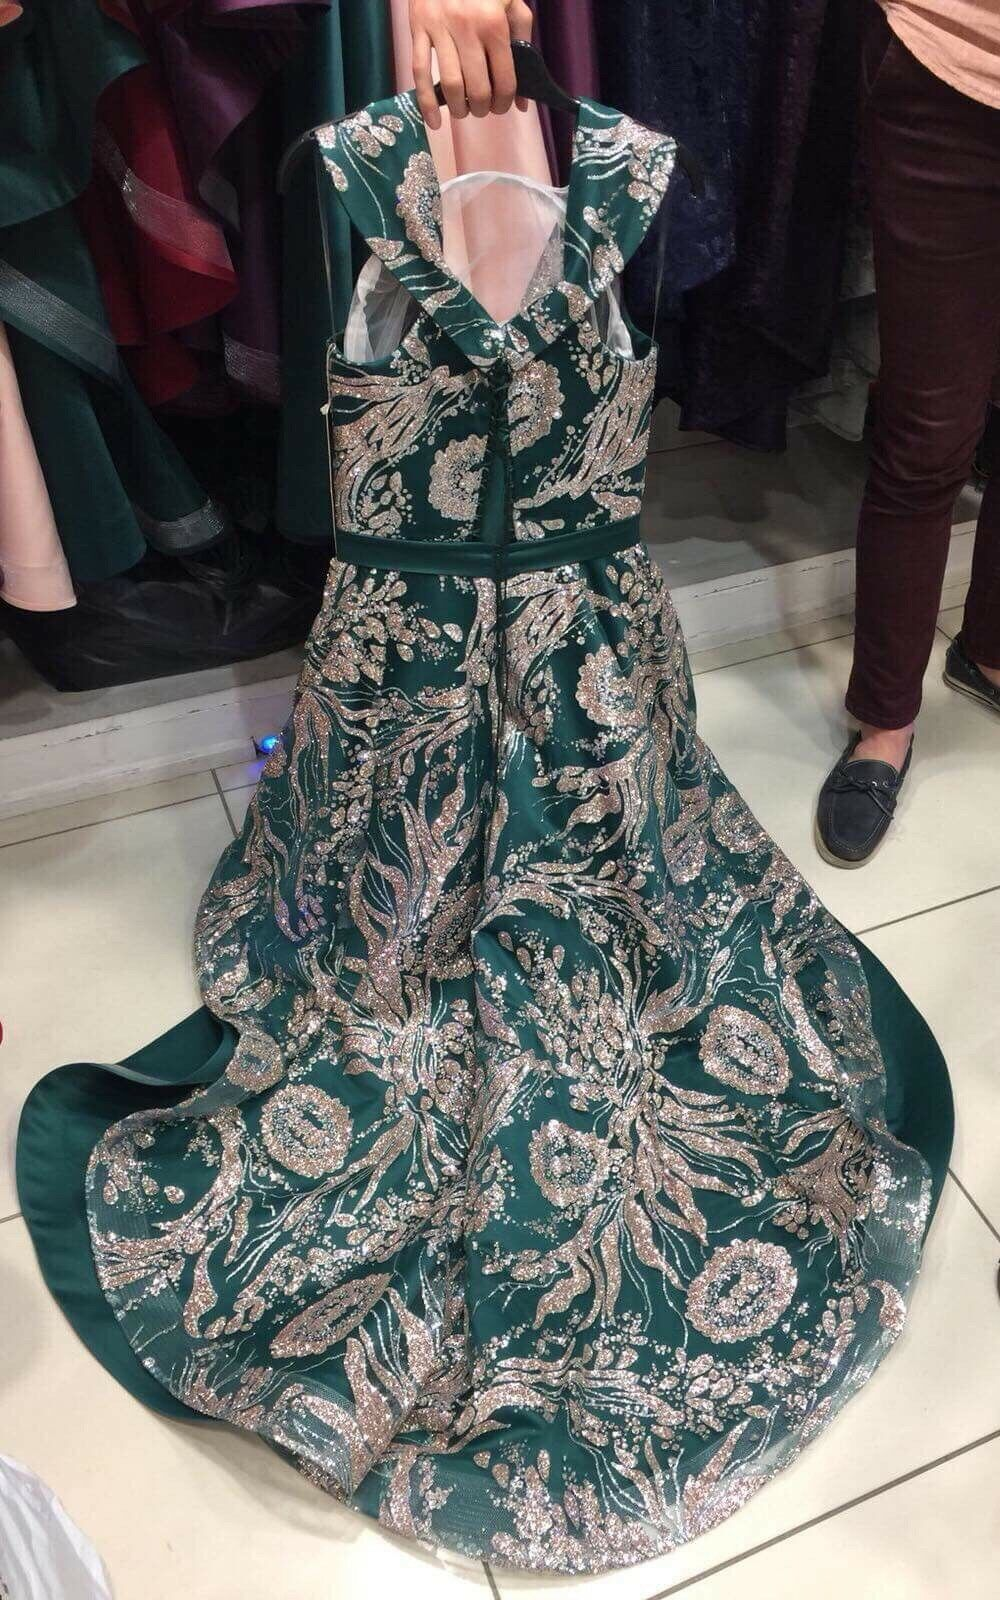 Bor Mariage accasinal Vert mousseux Robe